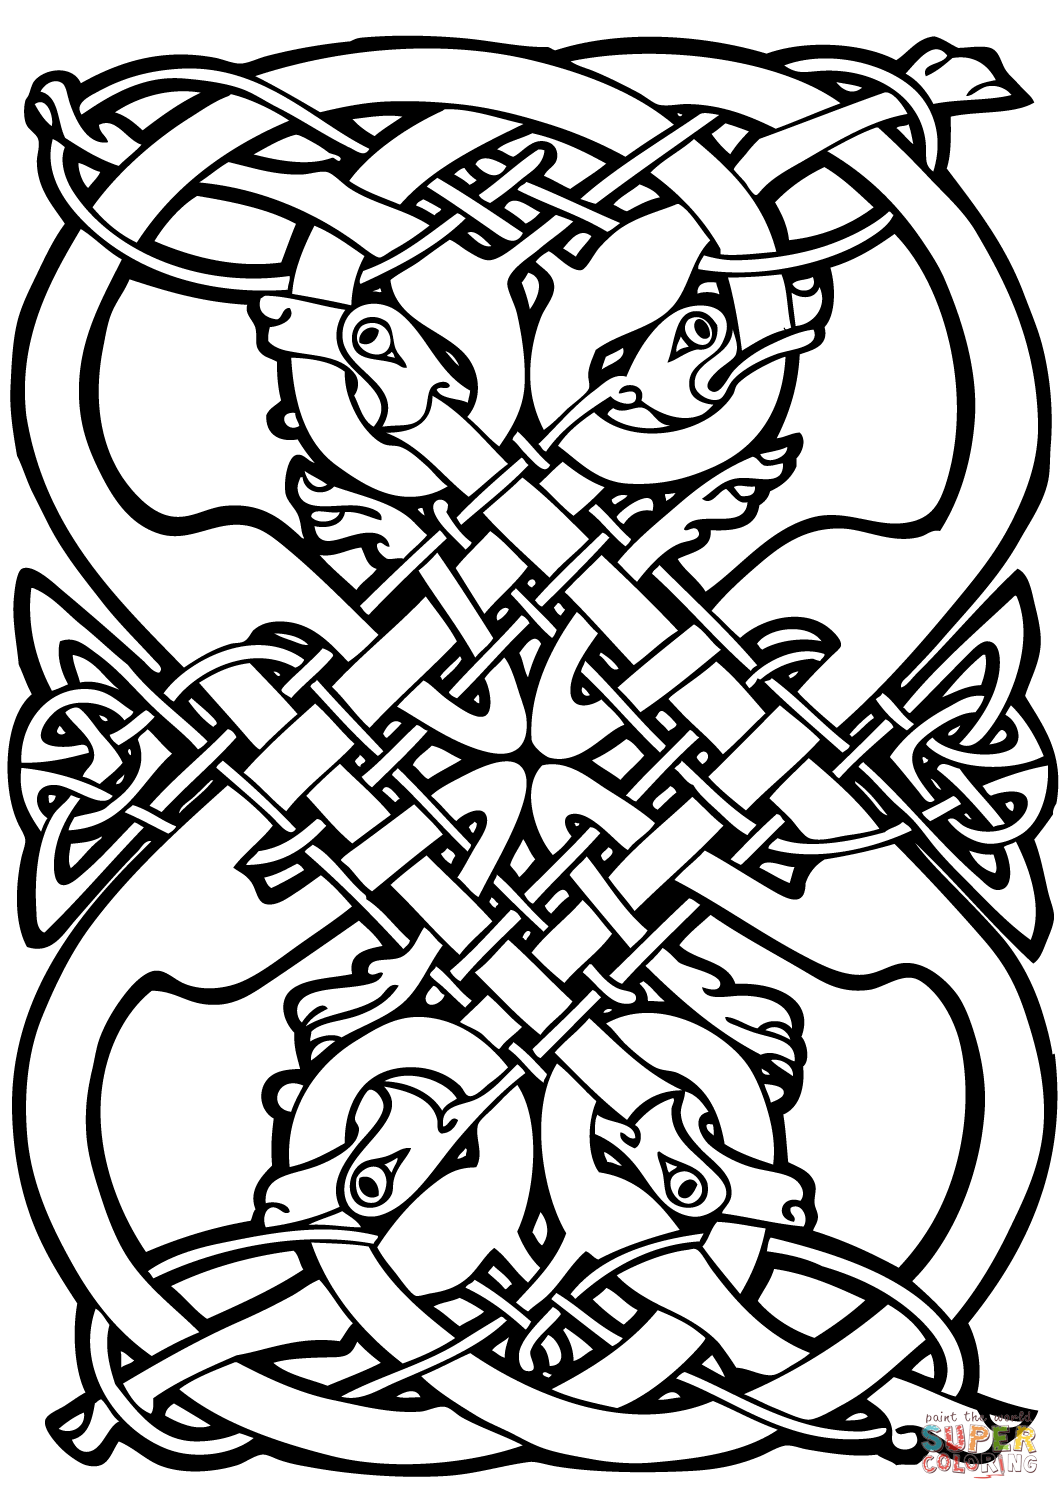 celtic designs coloring pages design coloring pages free download on clipartmag celtic designs coloring pages